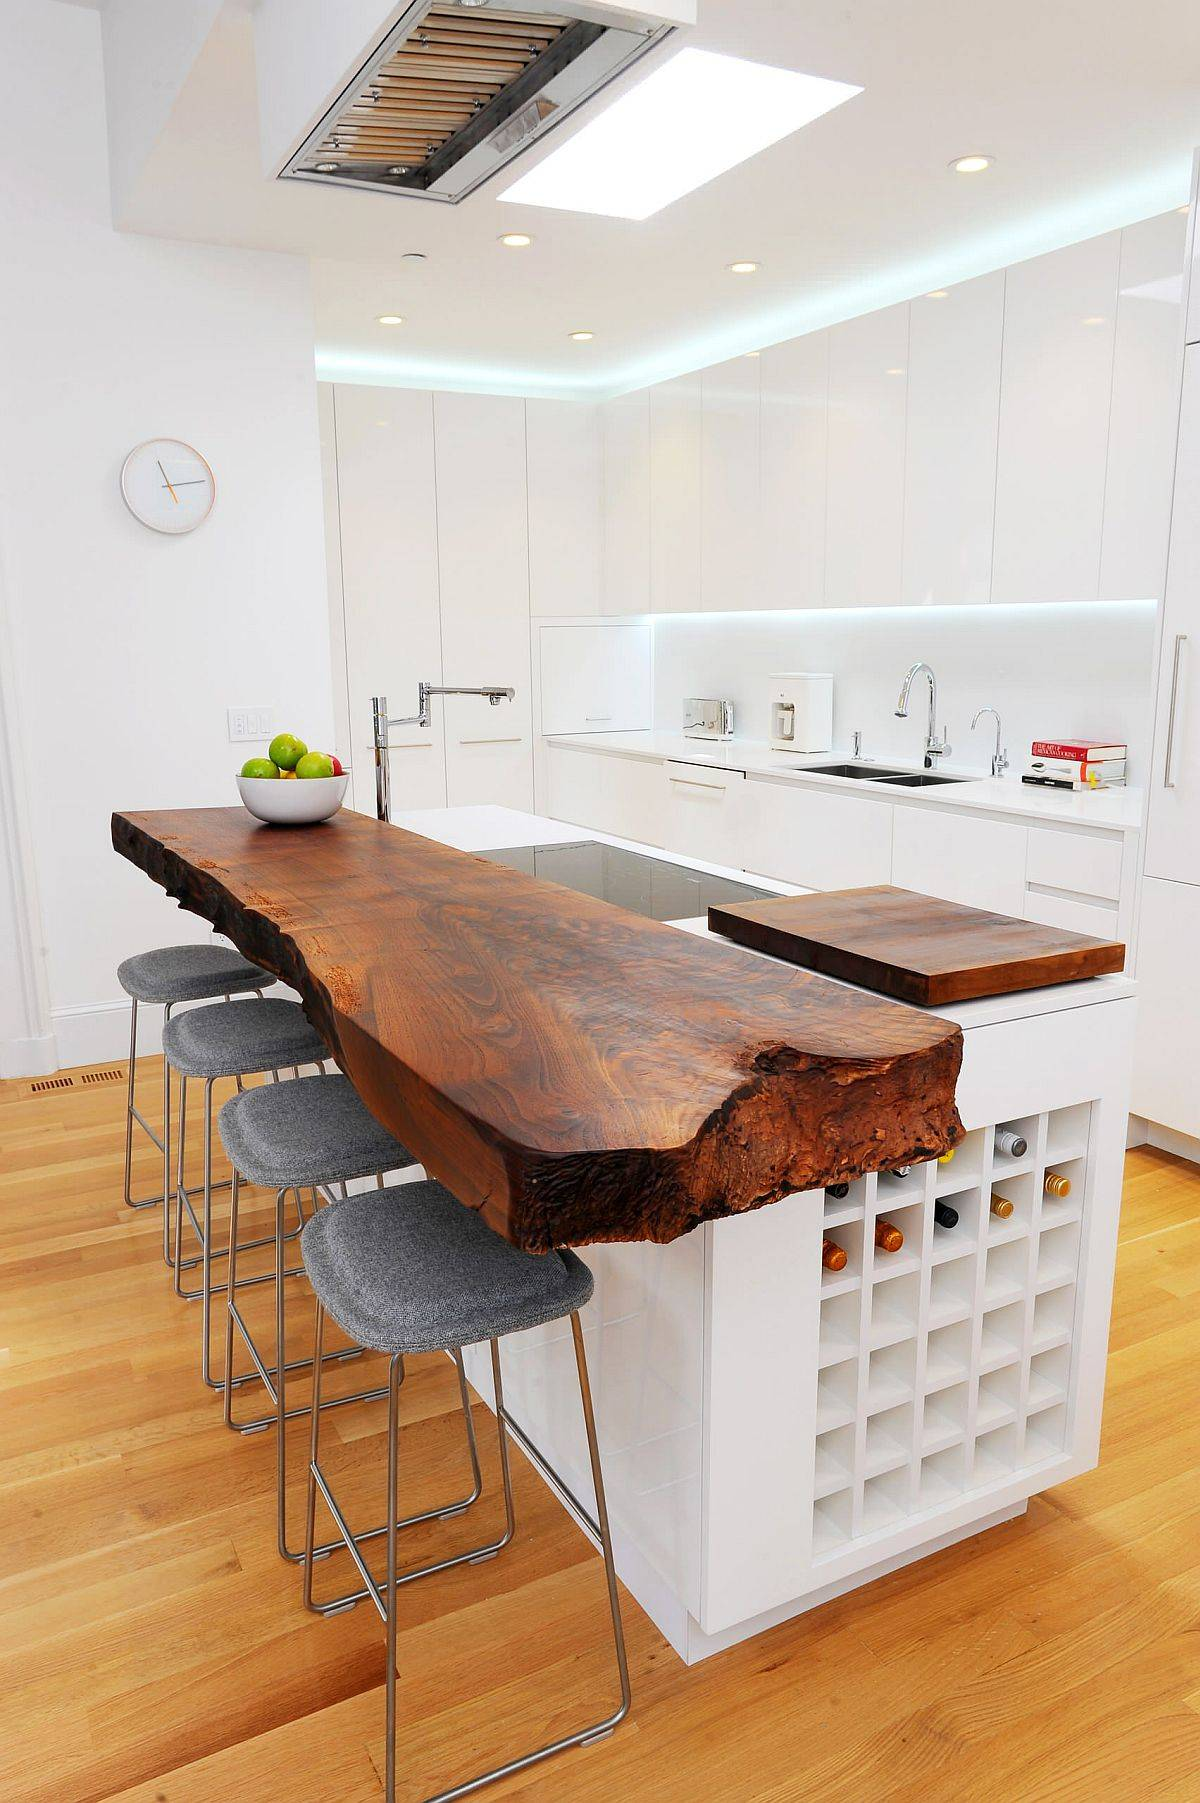 Stunningly-beautiful-breakfast-bar-counter-in-live-edge-wood-that-fits-in-seamlessly-with-the-contemporary-style-96225